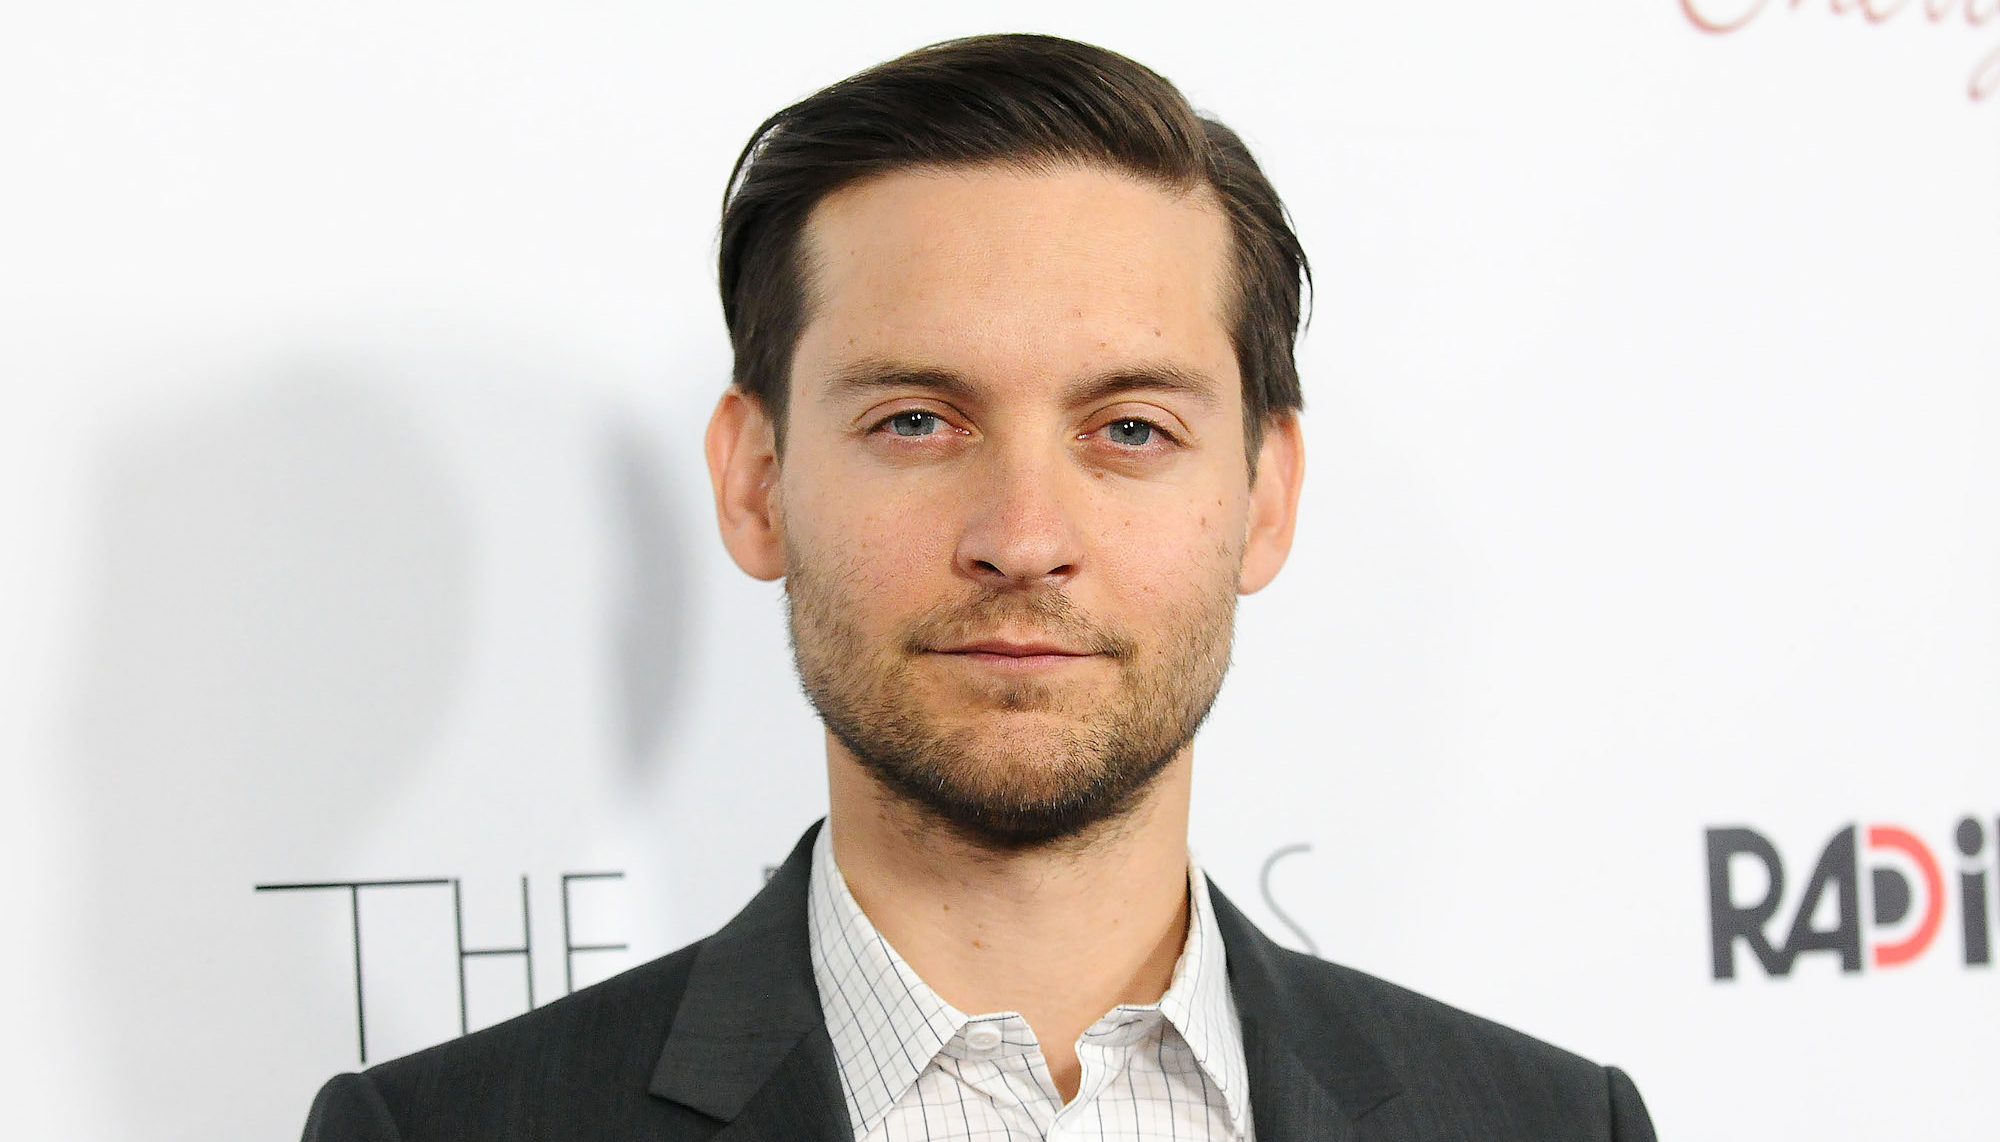 Tobey Maguire Sexy Gay Scenes & Shirtless Beach Pics